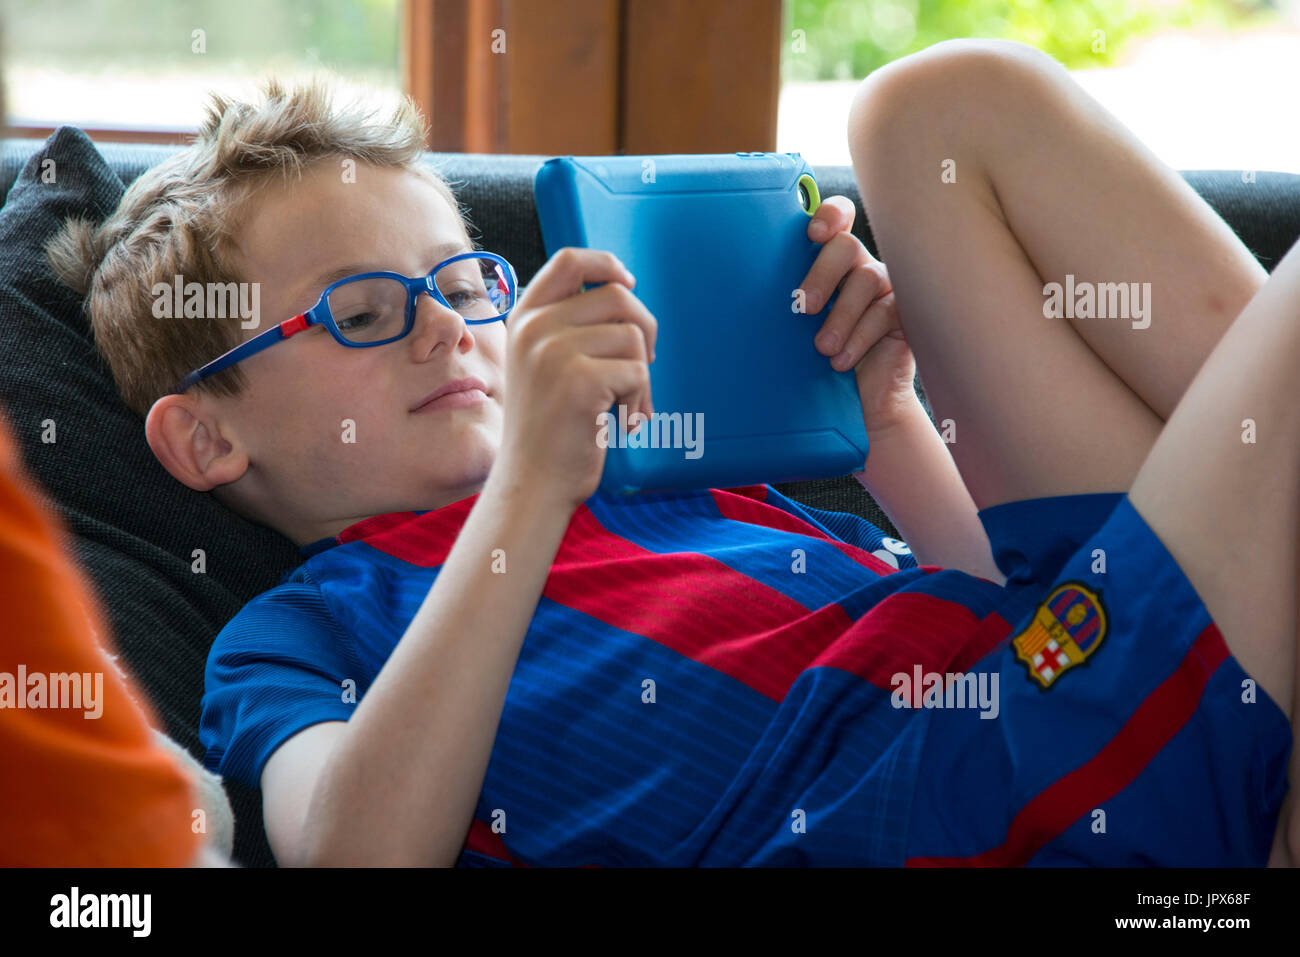 Young Boy, 6 years, playing games on tablet, close-up - Stock Image